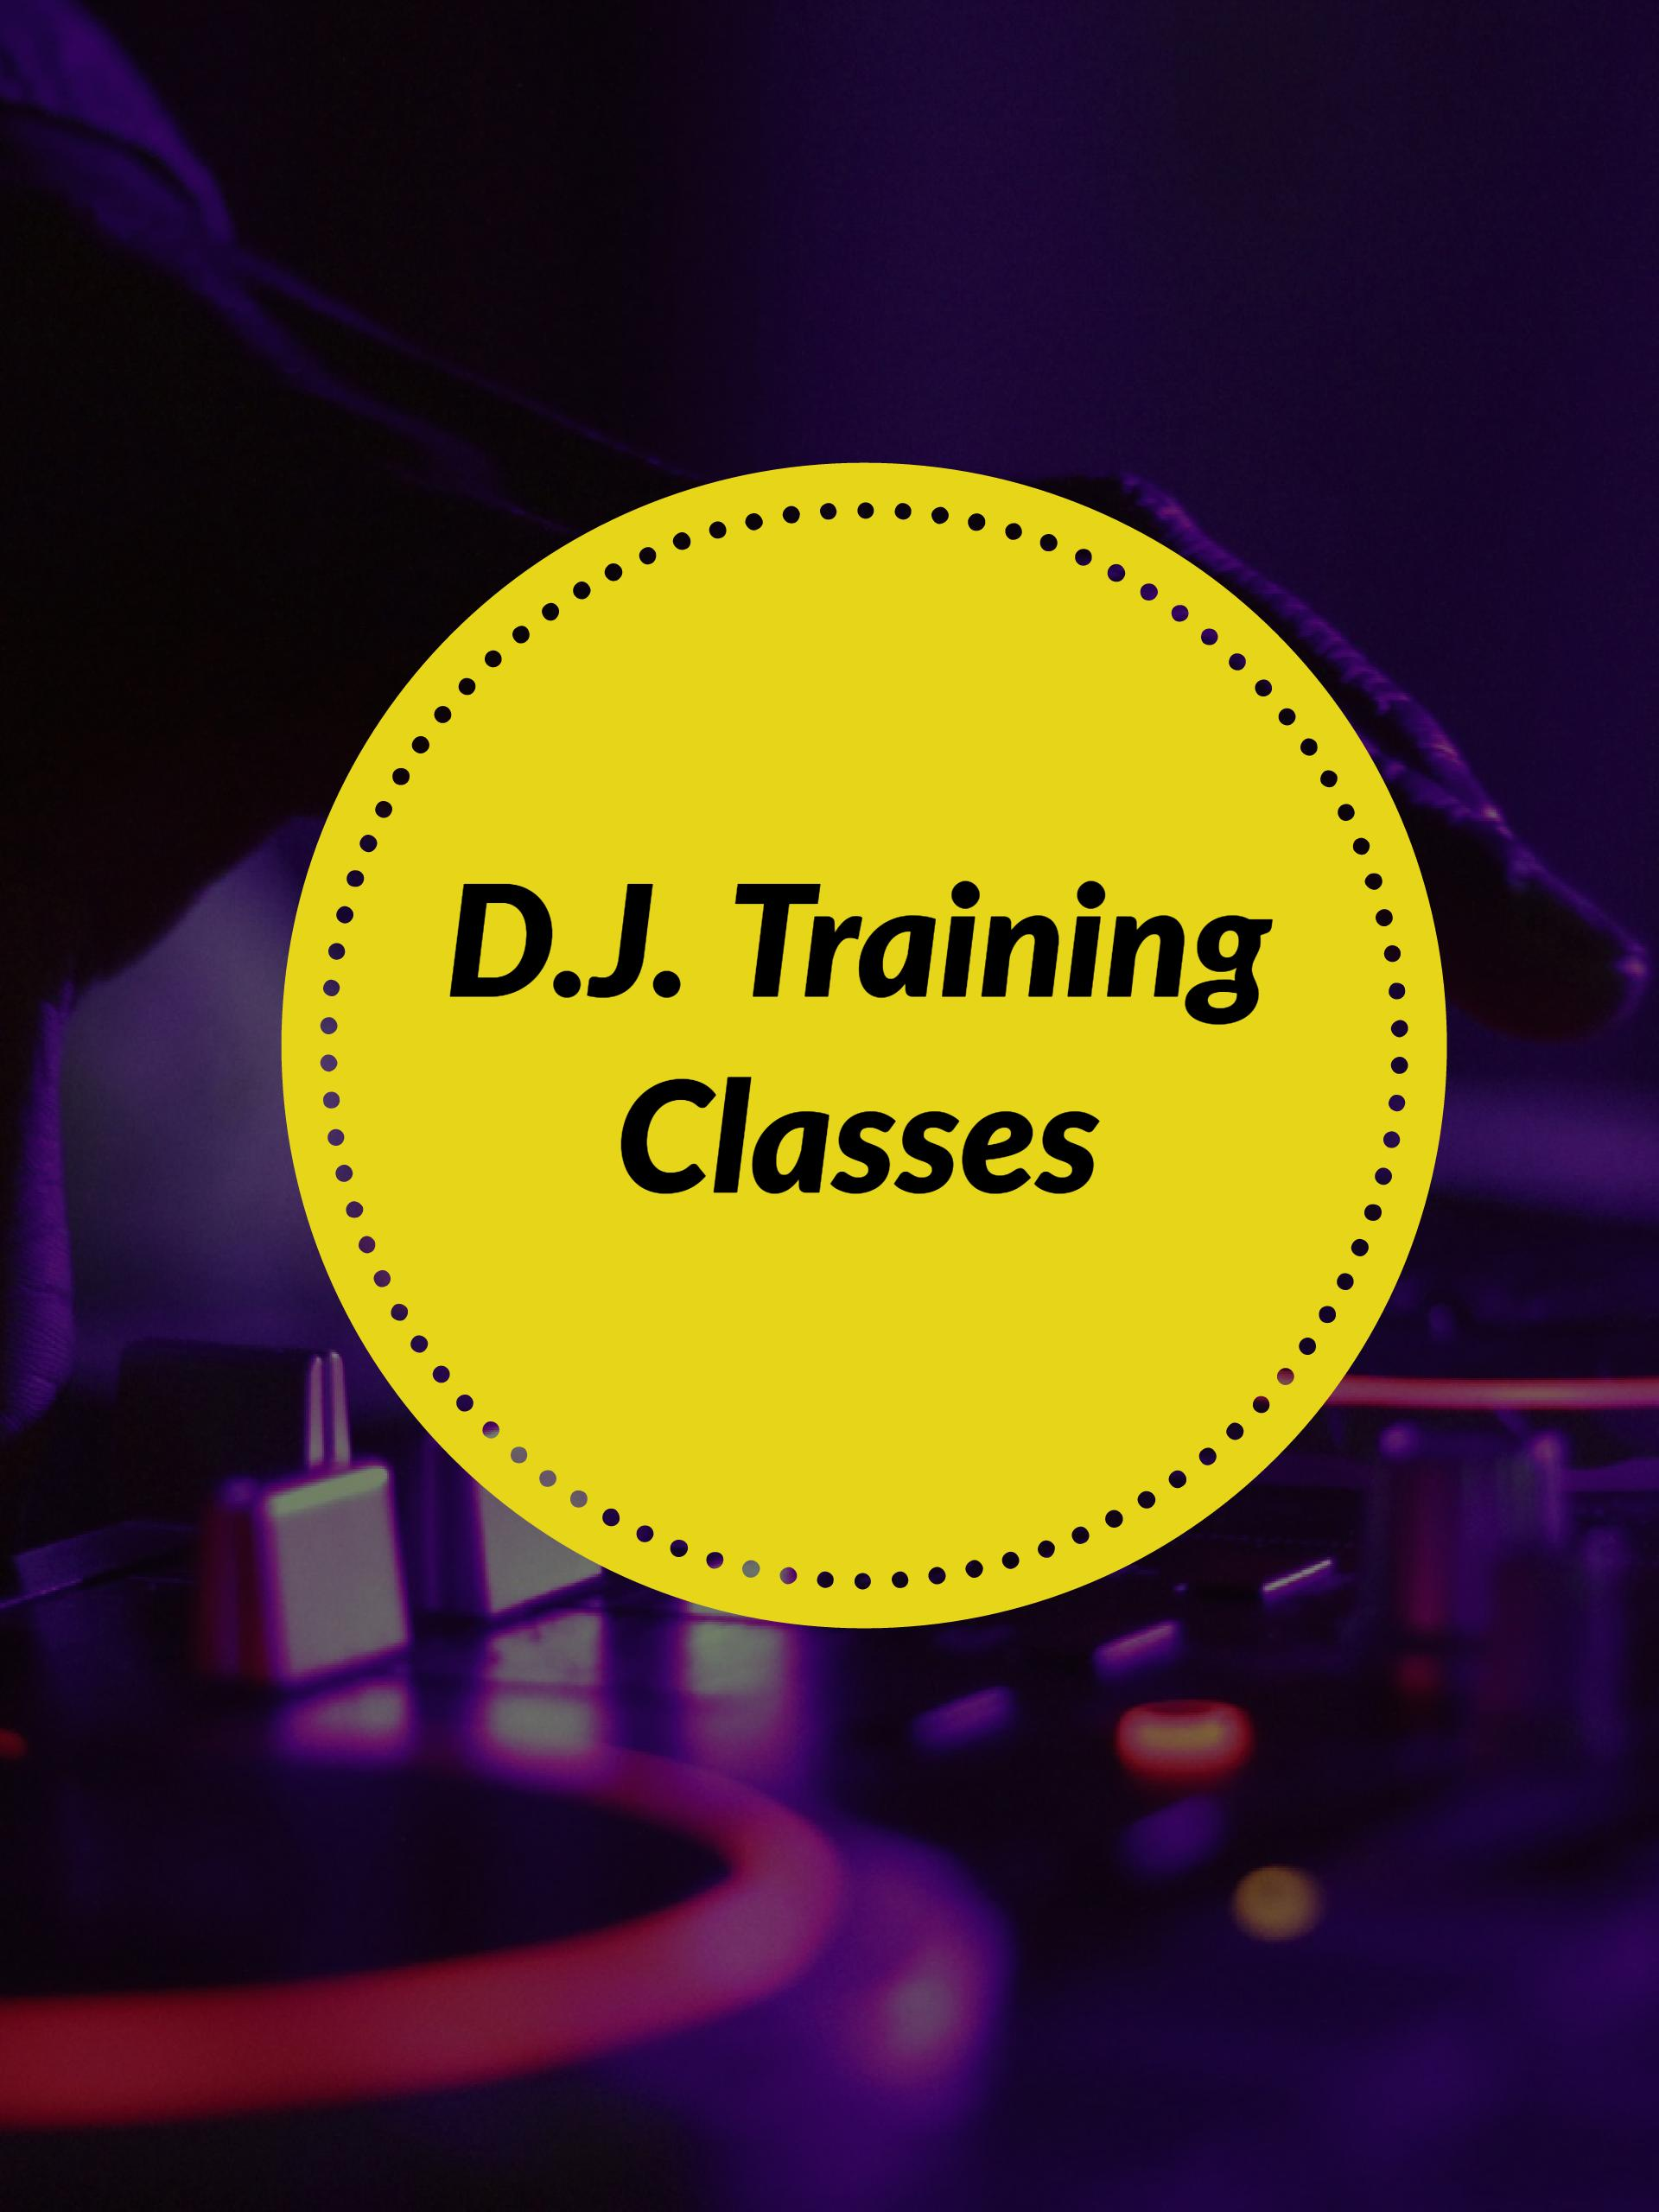 D.J. Training Classes in Delhi